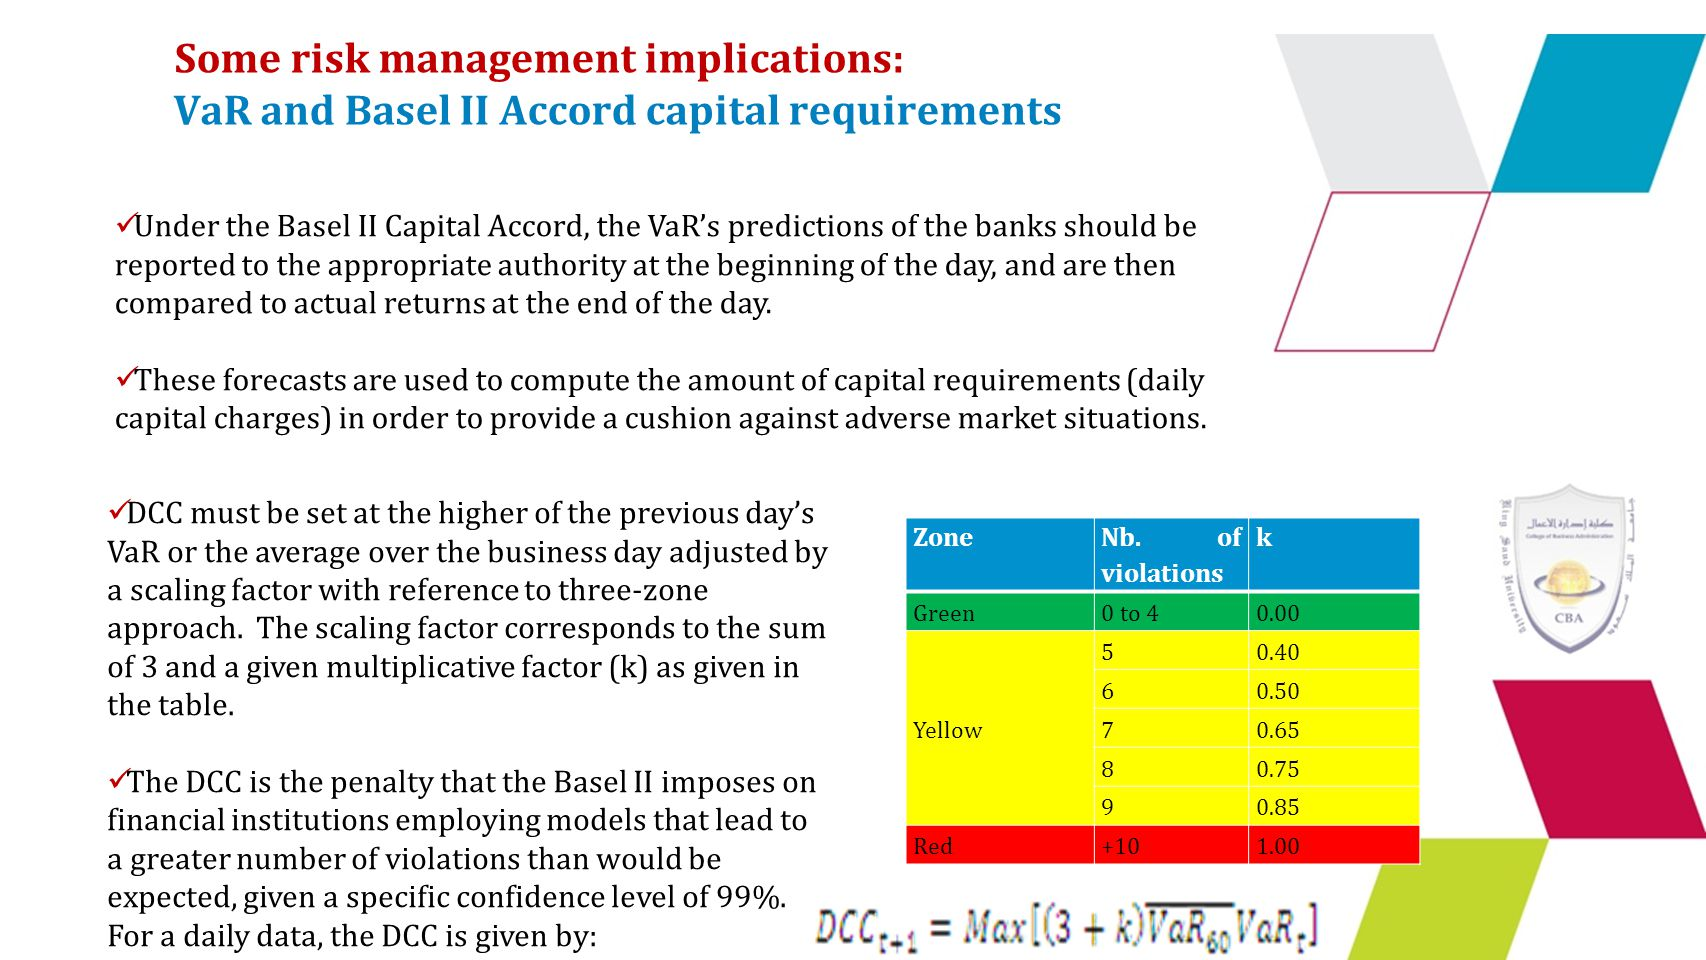 Some risk management implications: VaR and Basel II Accord capital requirements DCC must be set at the higher of the previous day's VaR or the average over the business day adjusted by a scaling factor with reference to three-zone approach.